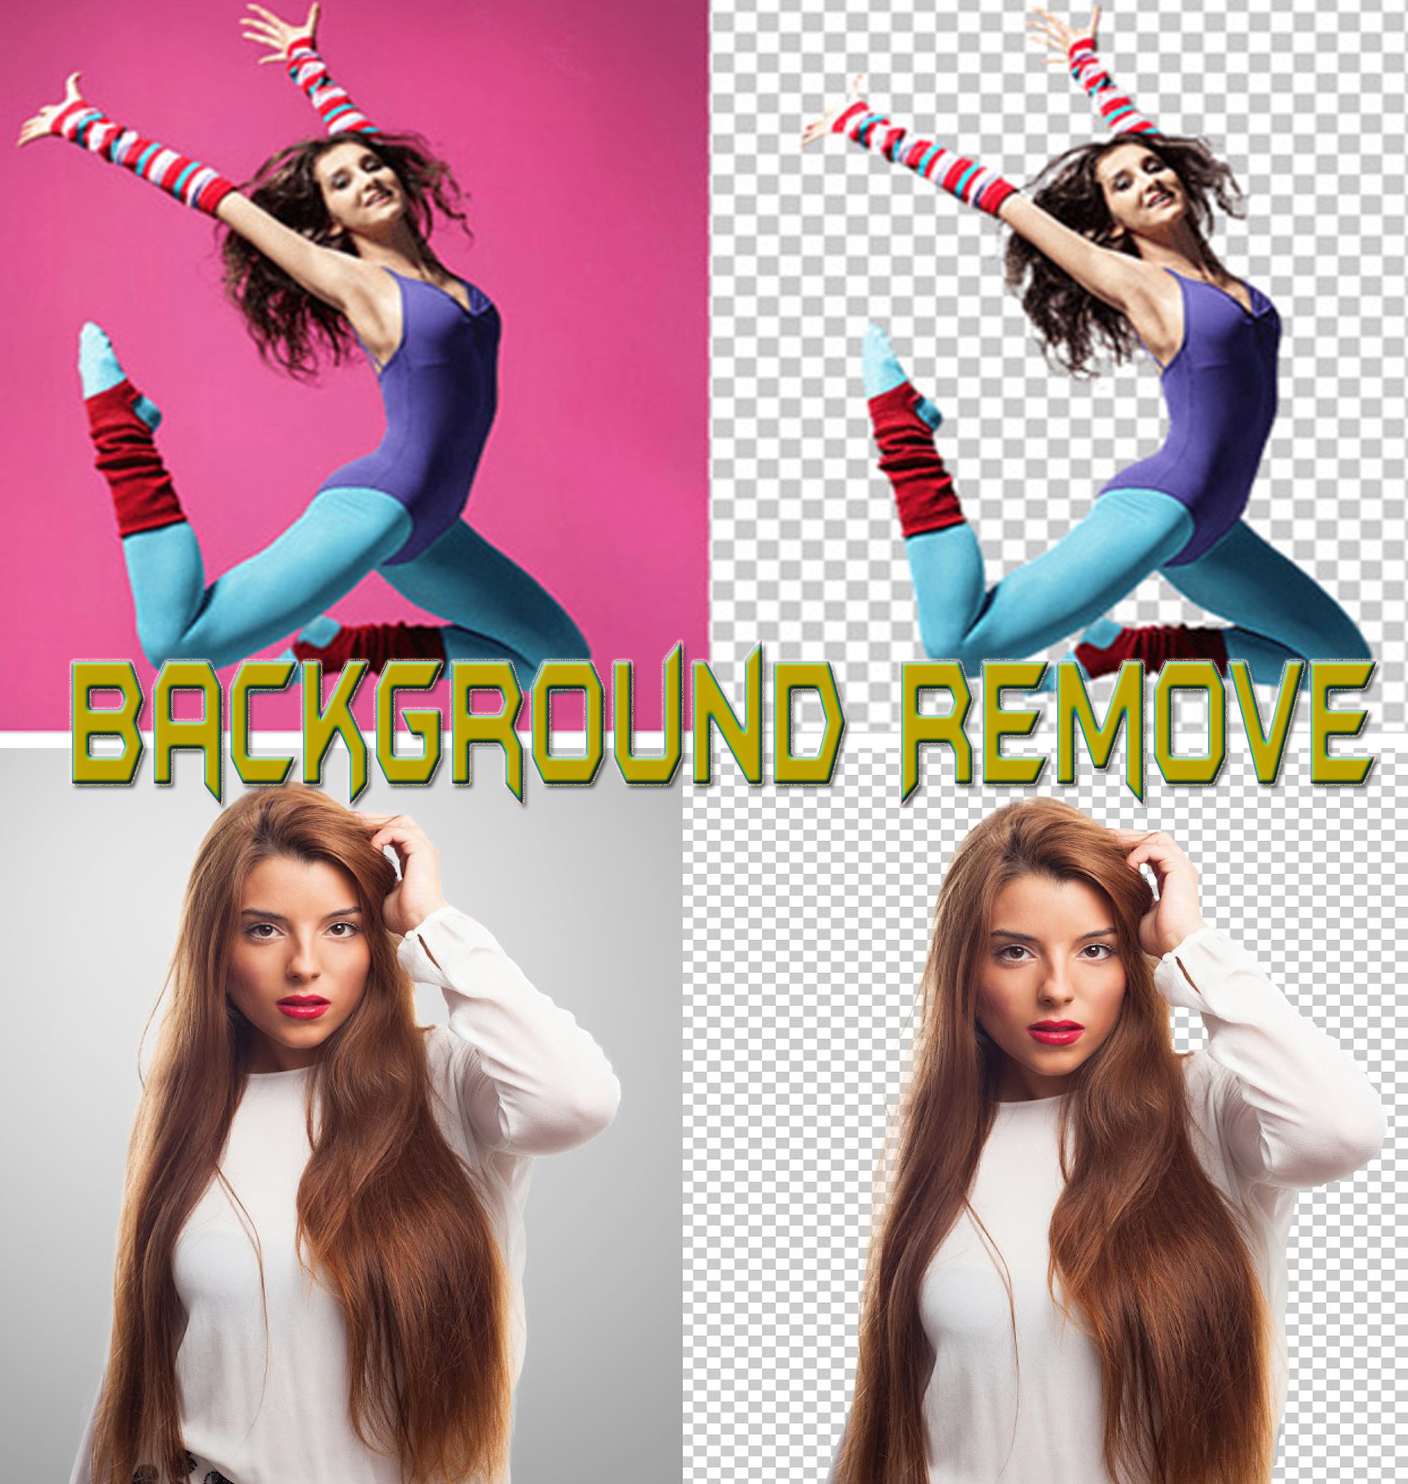 Do not clean n precise background remove 24hours